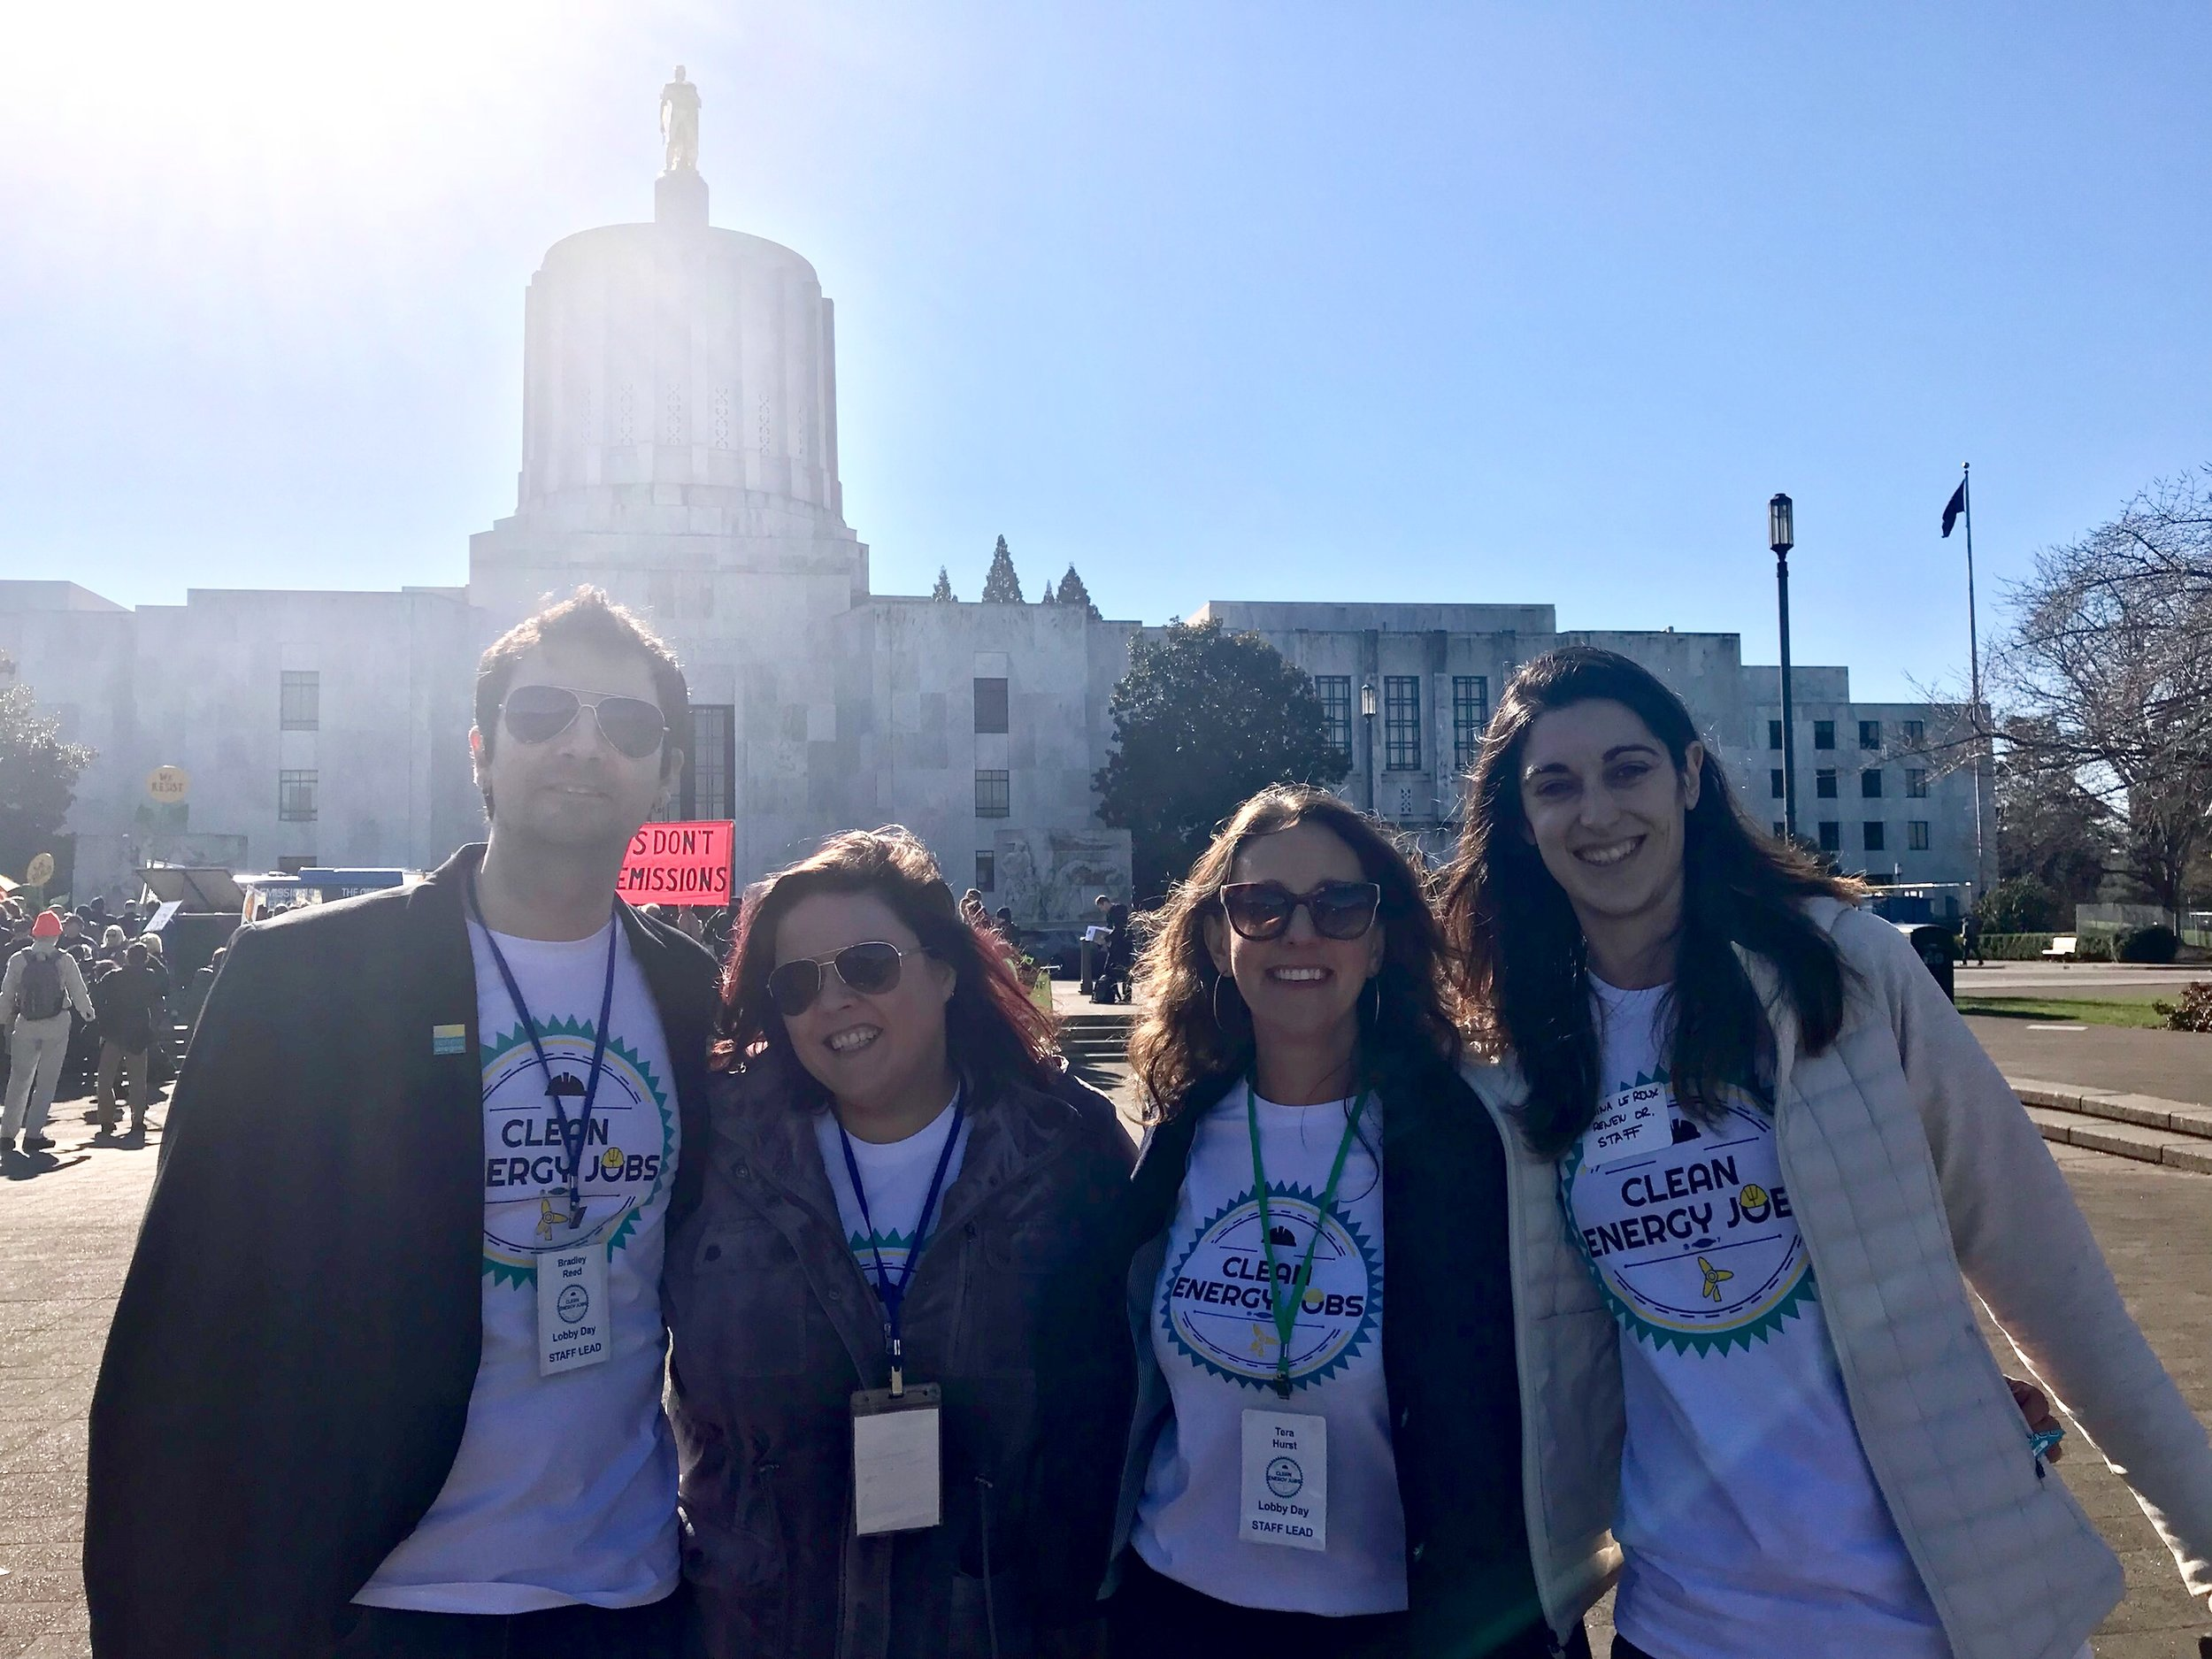 Devon worked with Renew oregon to execute the 2018 clean energy jobs lobby day and rally, which turned out over 500 oregonians from across the state to voice support for clean energy legislation.